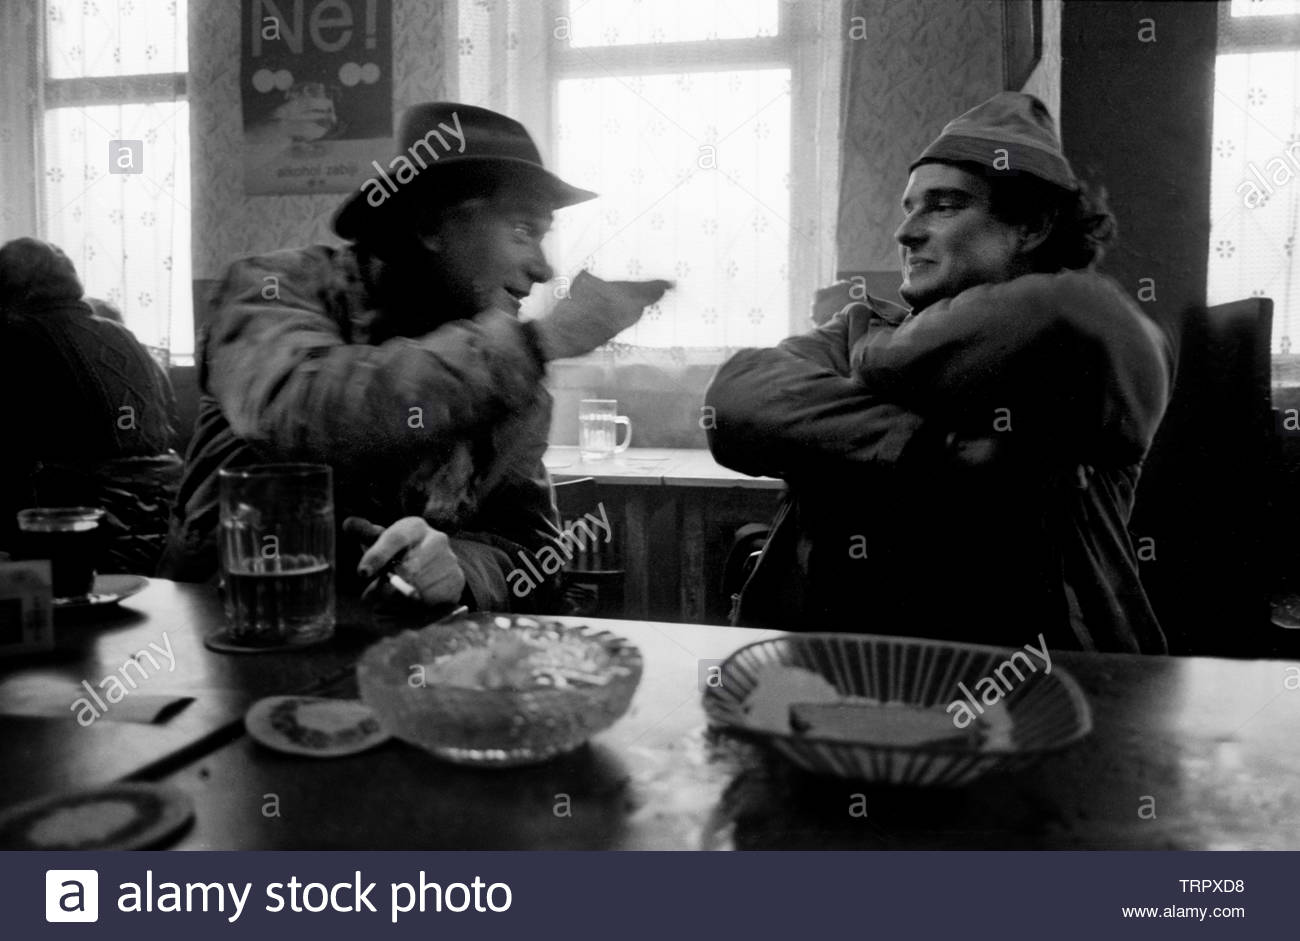 Czechoslovakia, Prague,1989 during the Velvet Revolution, the fall of communism in Eastern Europe. Tractor plant workers having just finished their night shift enjoy beer and bread for breakfast in a nearby bar. COPYRIGHT PHOTOGRAPH BY BRIAN HARRIS  © 07808-579804 Stock Photo